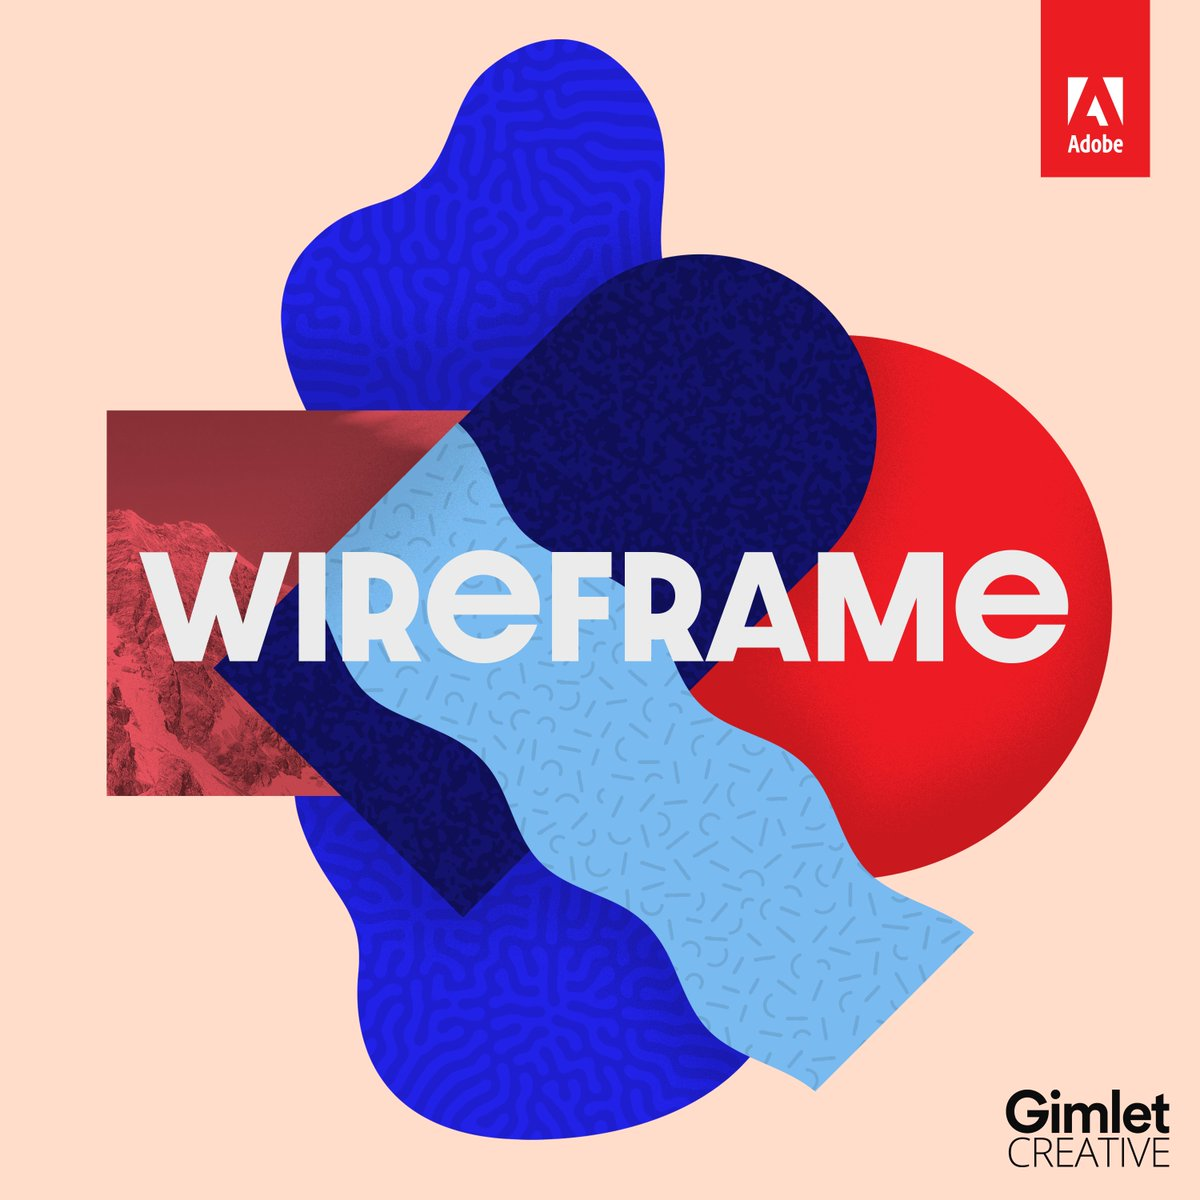 Adobe Creative Cloud On Twitter Good Design According To You In